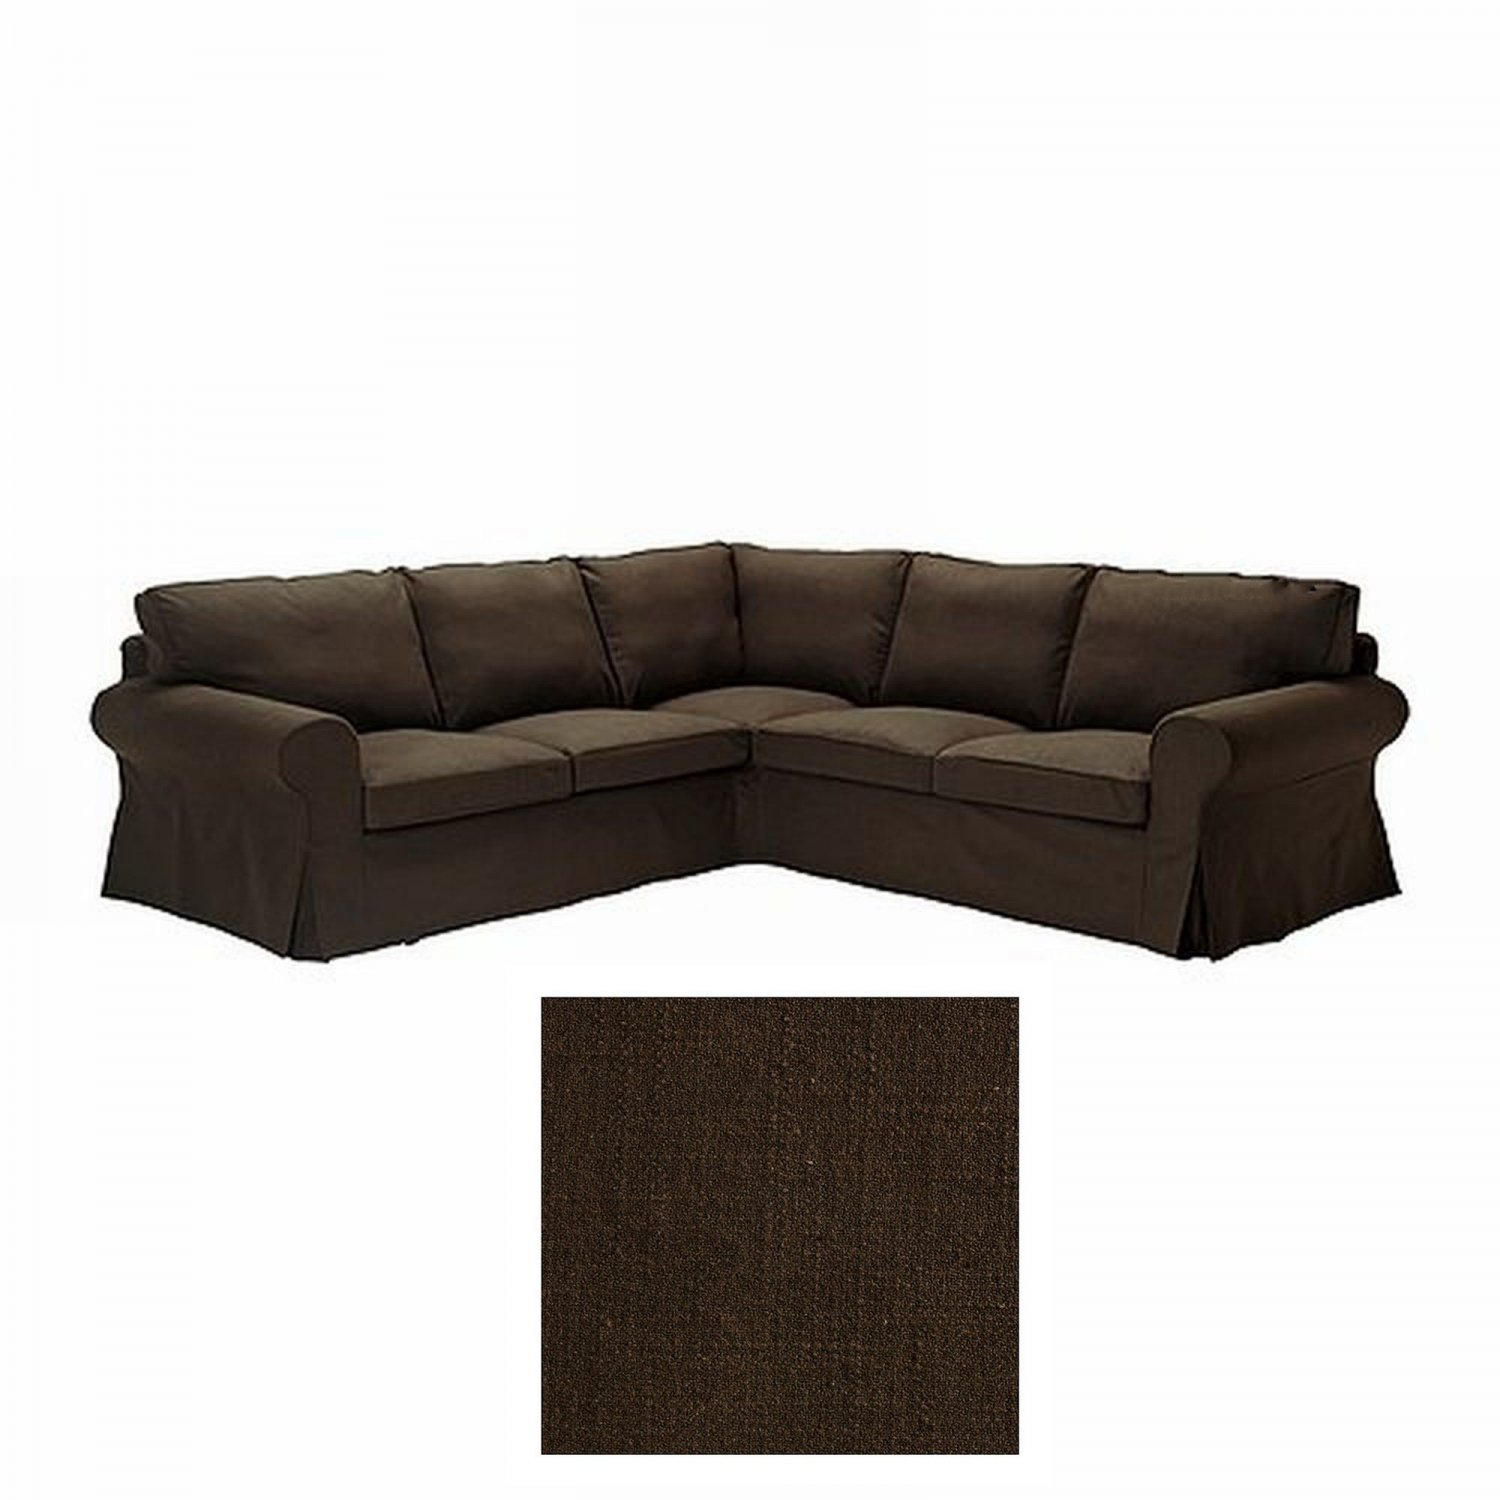 IKEA Ektorp 22 Corner Sofa COVER Slipcover SVANBY BROWN  : 5591644fbf09854622b from www.ecrater.com size 1500 x 1500 jpeg 145kB